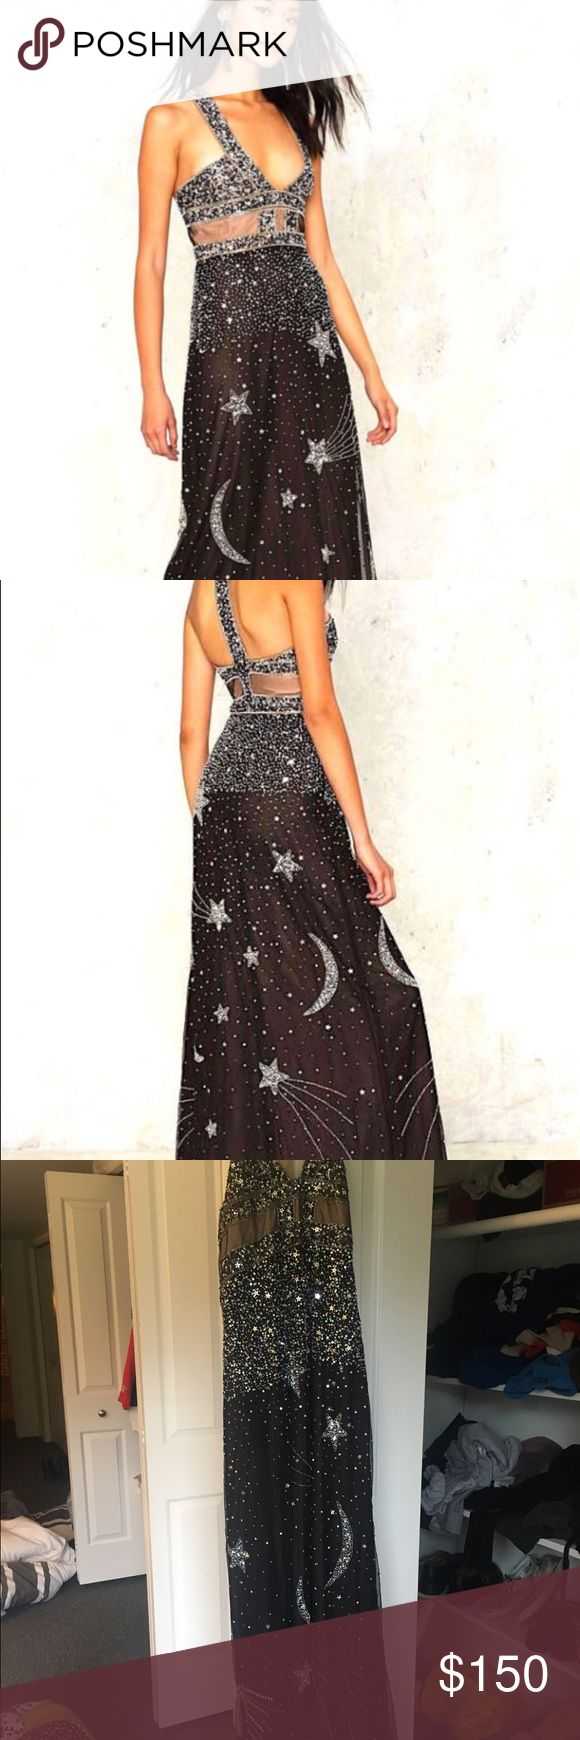 Nast Gal Moon and Stars Formal Dress Beautiful and new formal/prom dress!! Never worn - bought online and it did not fit. Price is negotiable! Nasty Gal Dresses Prom